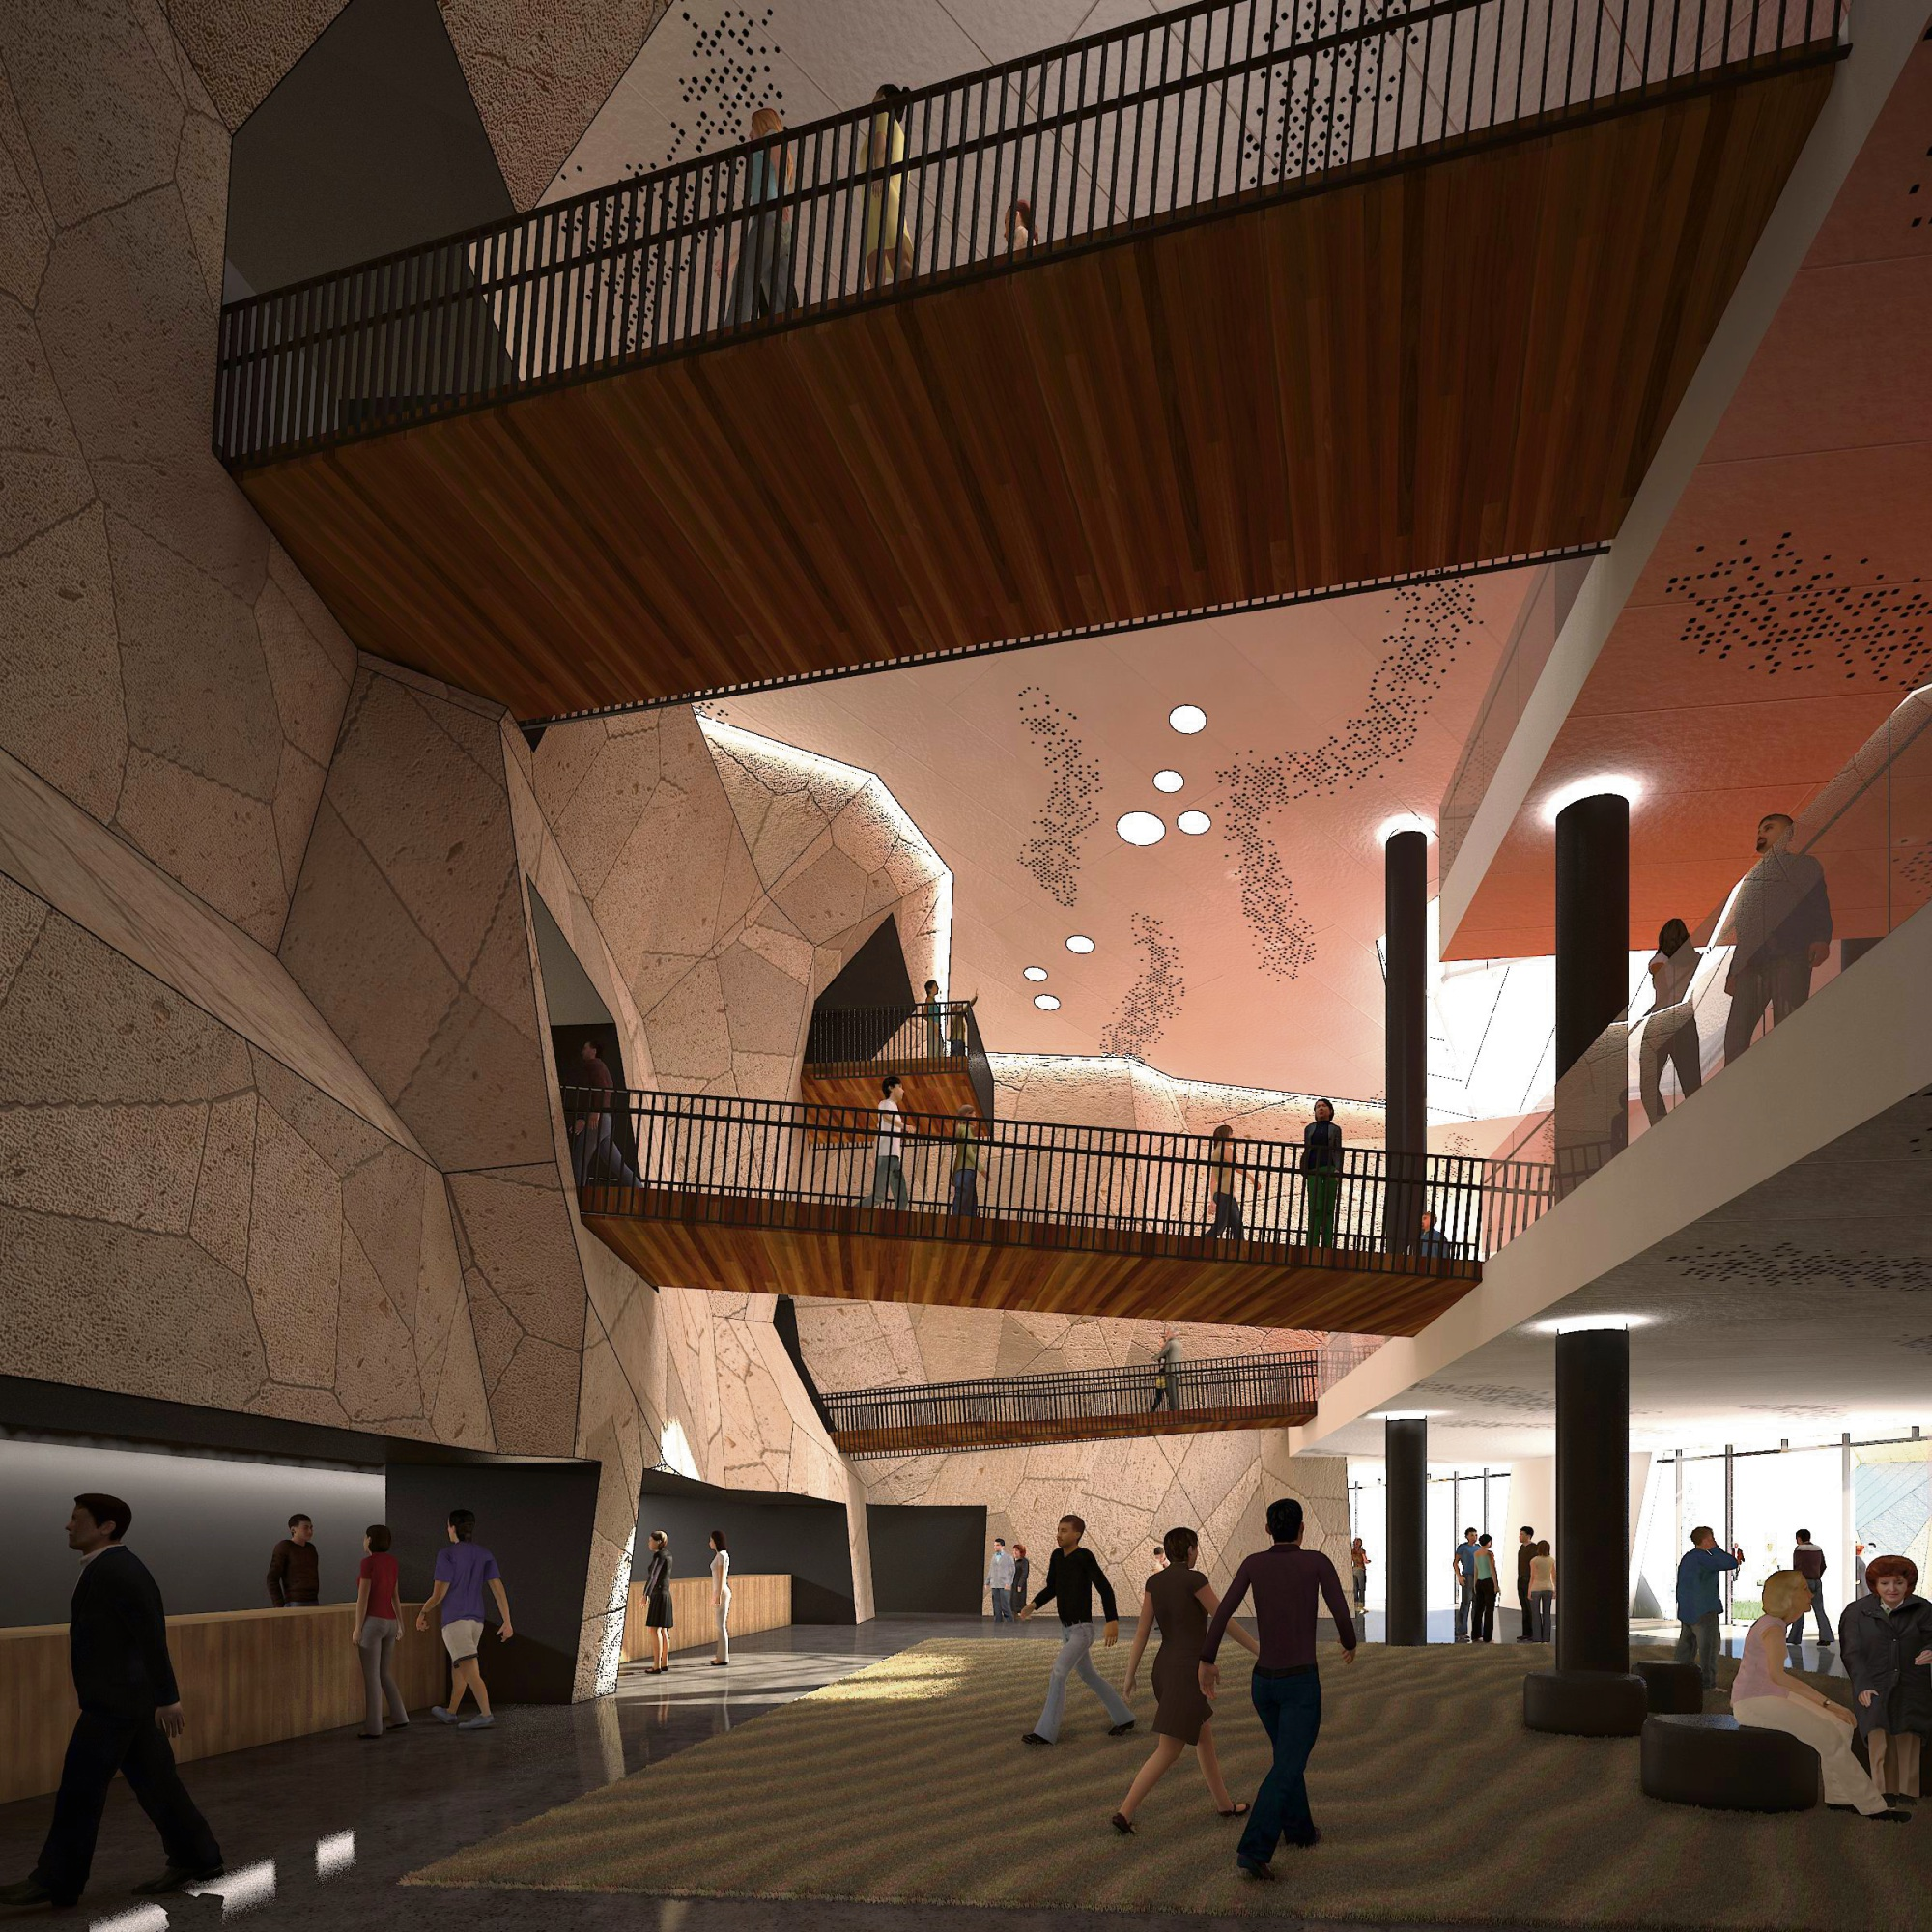 An artist's impression of the performing arts centre.